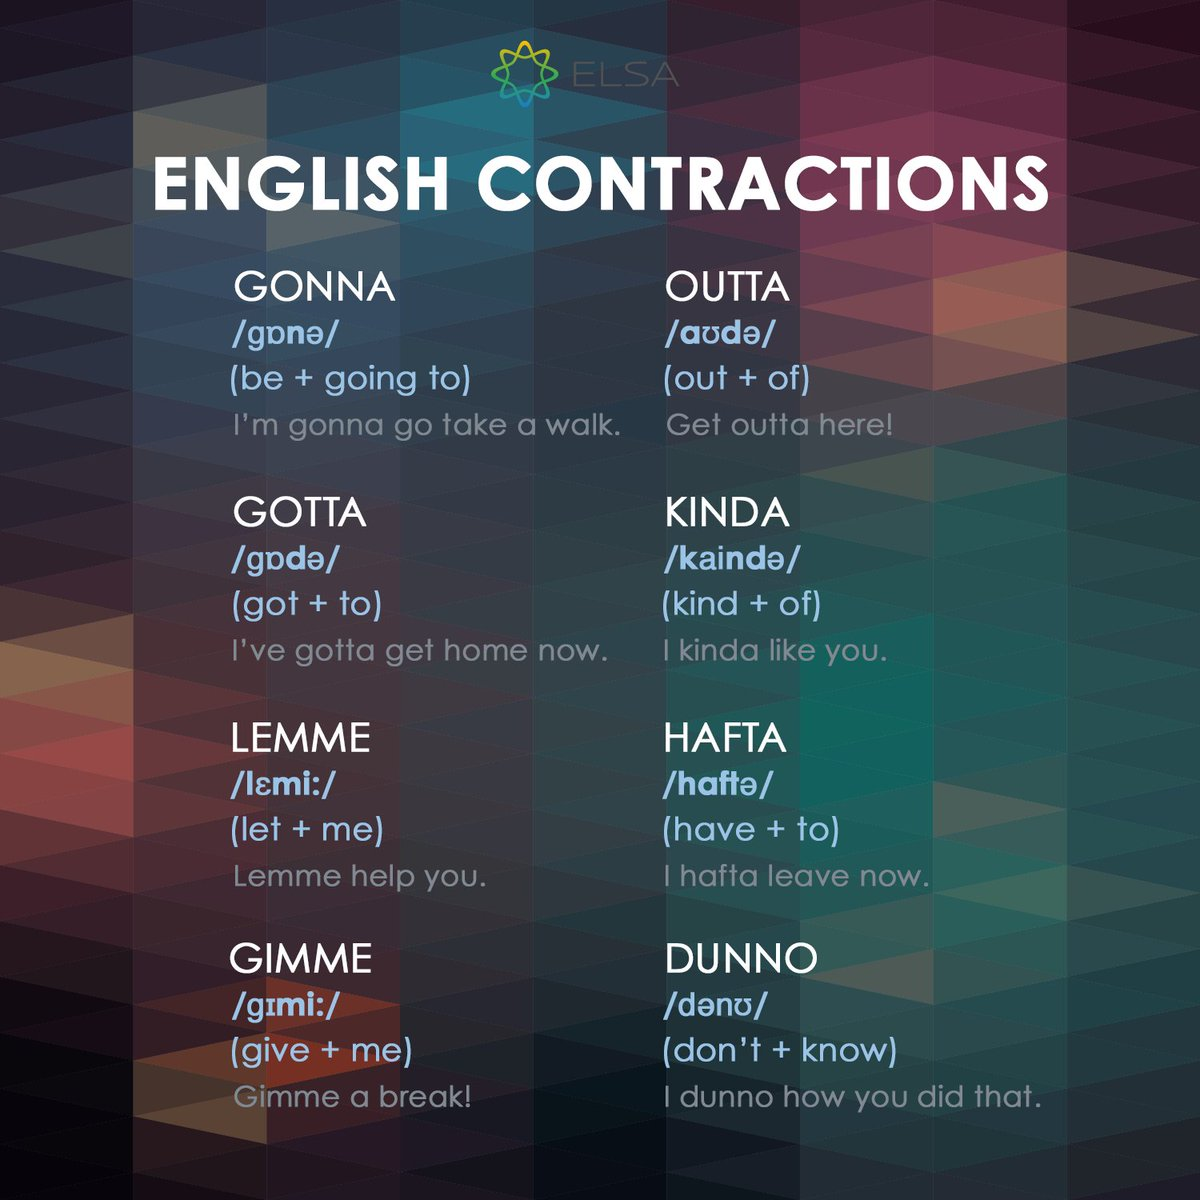 Contractions can help you in sounding more natural during conversations. Improve your listening ability as well as fluency through contractions. Learn with Elsa Speak to improve your spoken English. Download at https://t.co/bENiEpfRpe.  #EnglishTips #SpokenEnglish #LearnMore https://t.co/PmSsEFVLpx